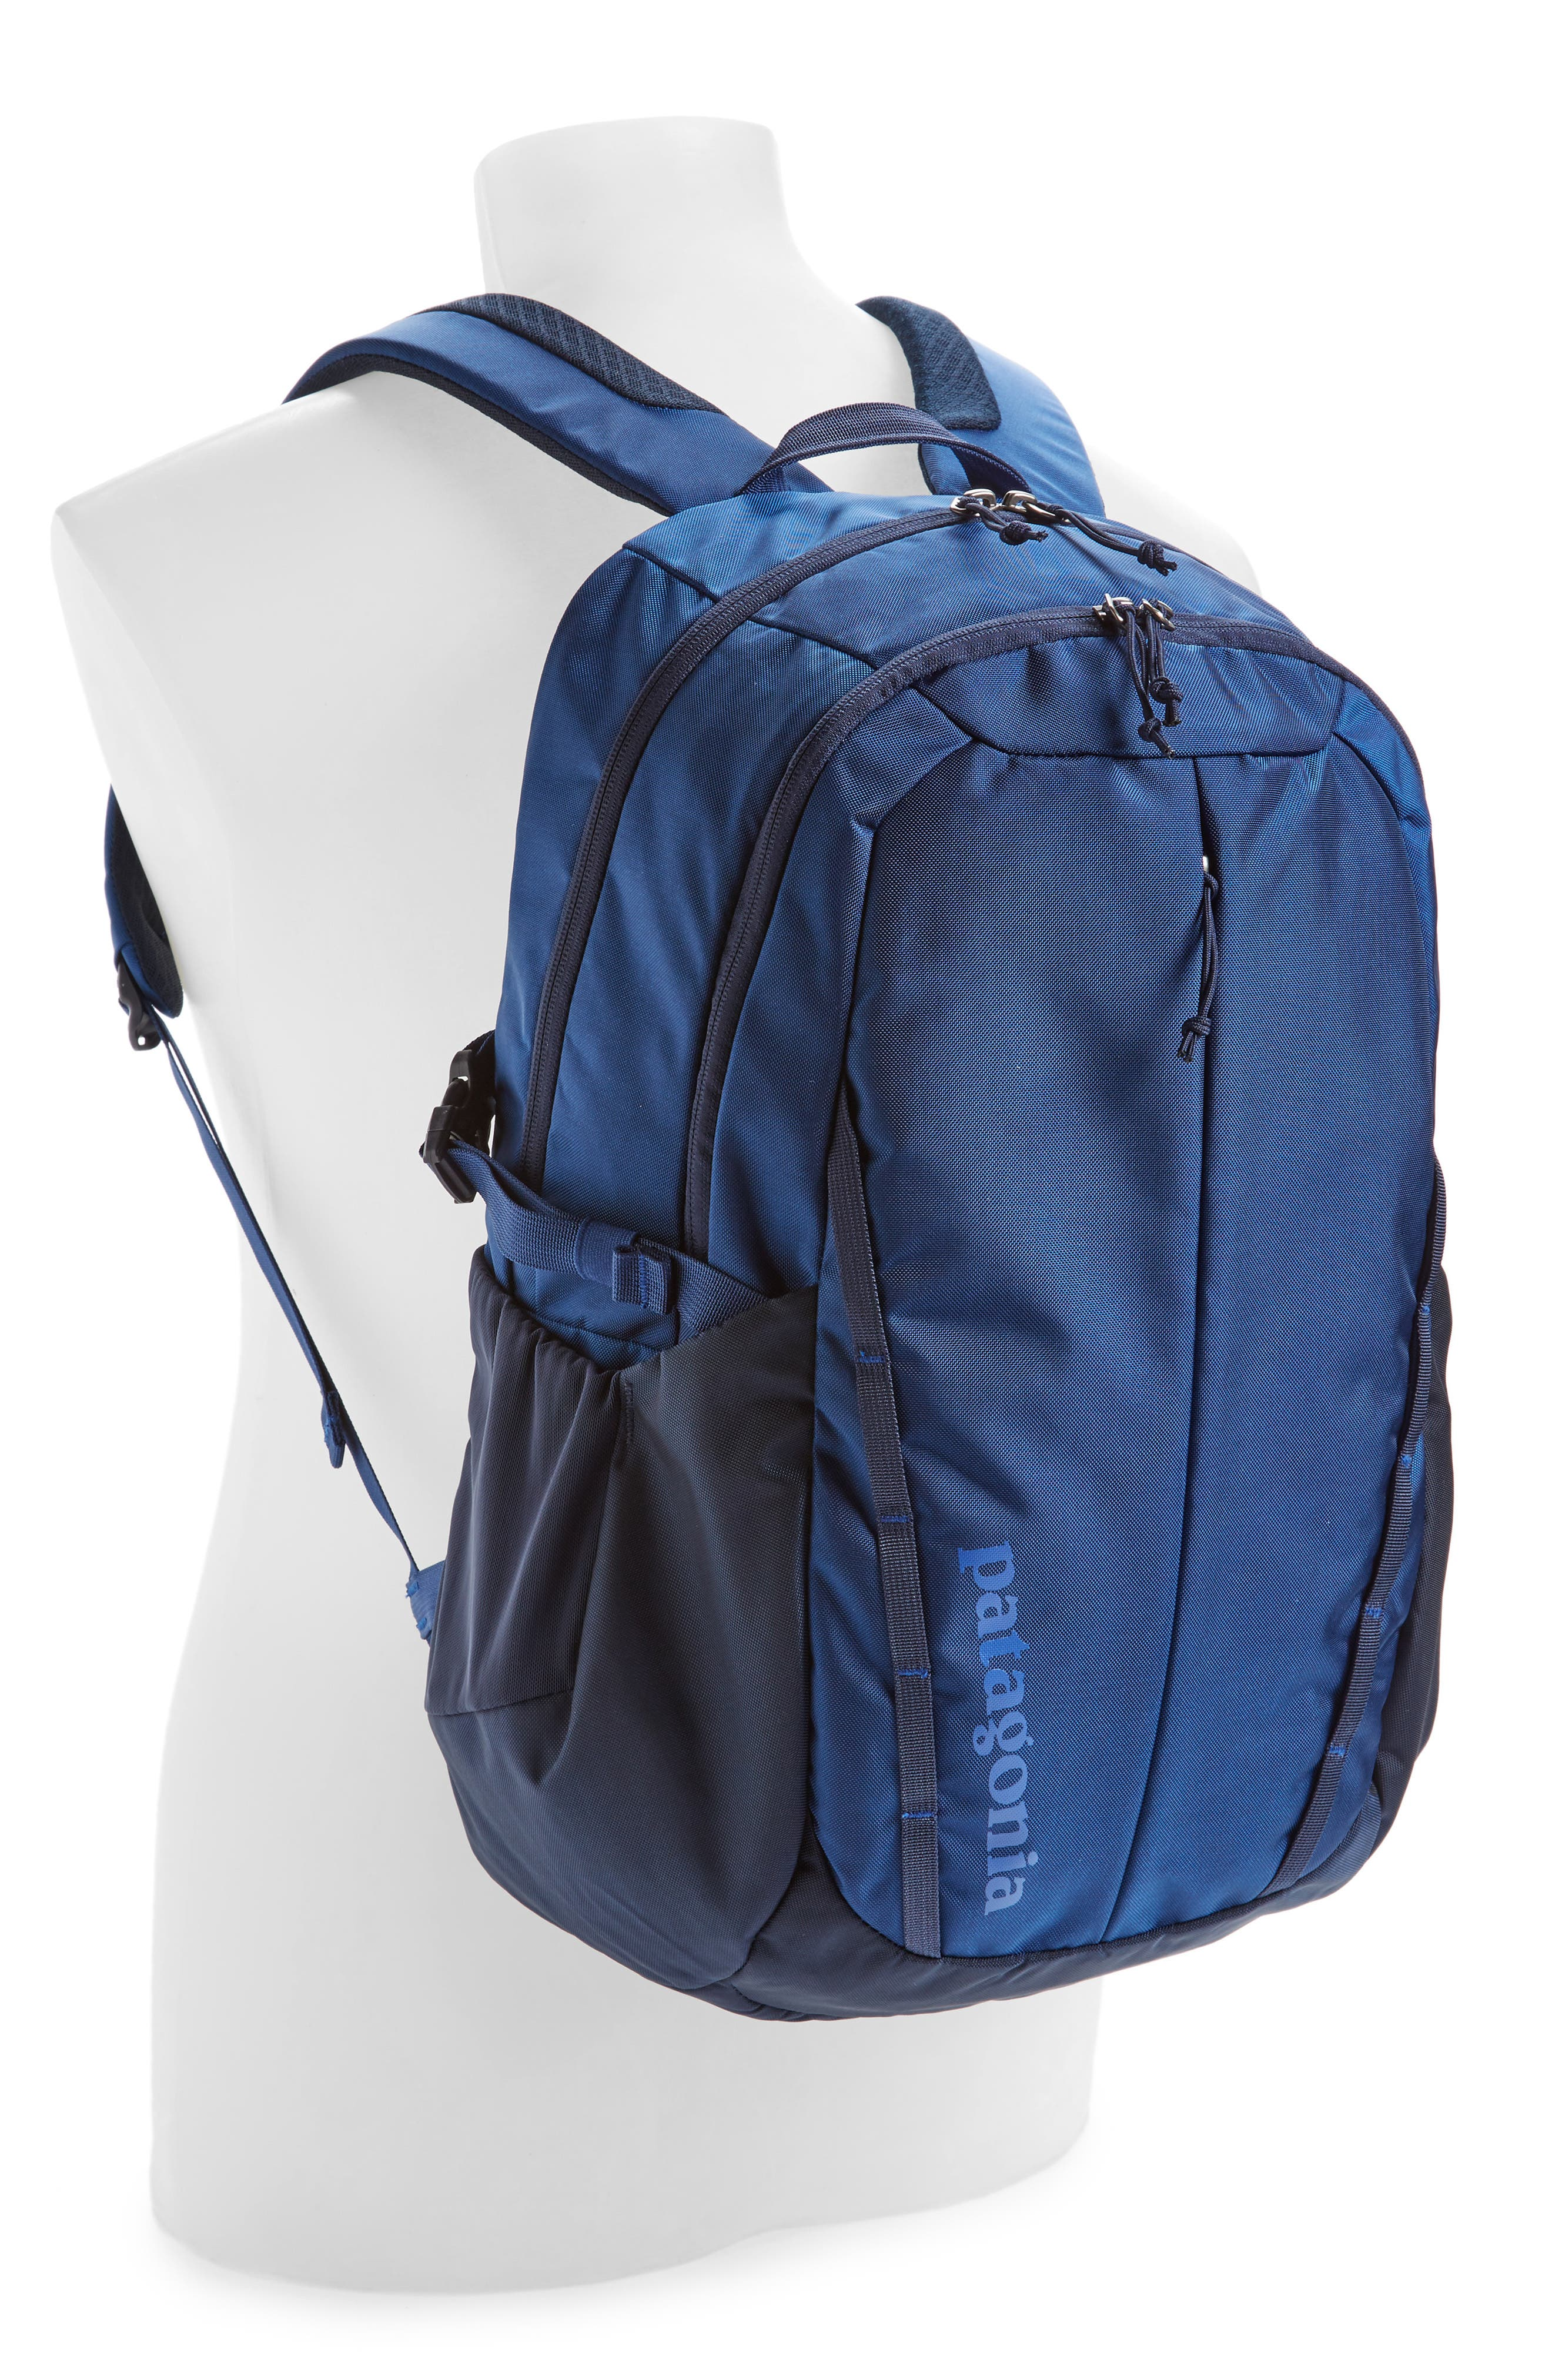 28L Refugio Backpack,                             Alternate thumbnail 2, color,                             Navy Blue